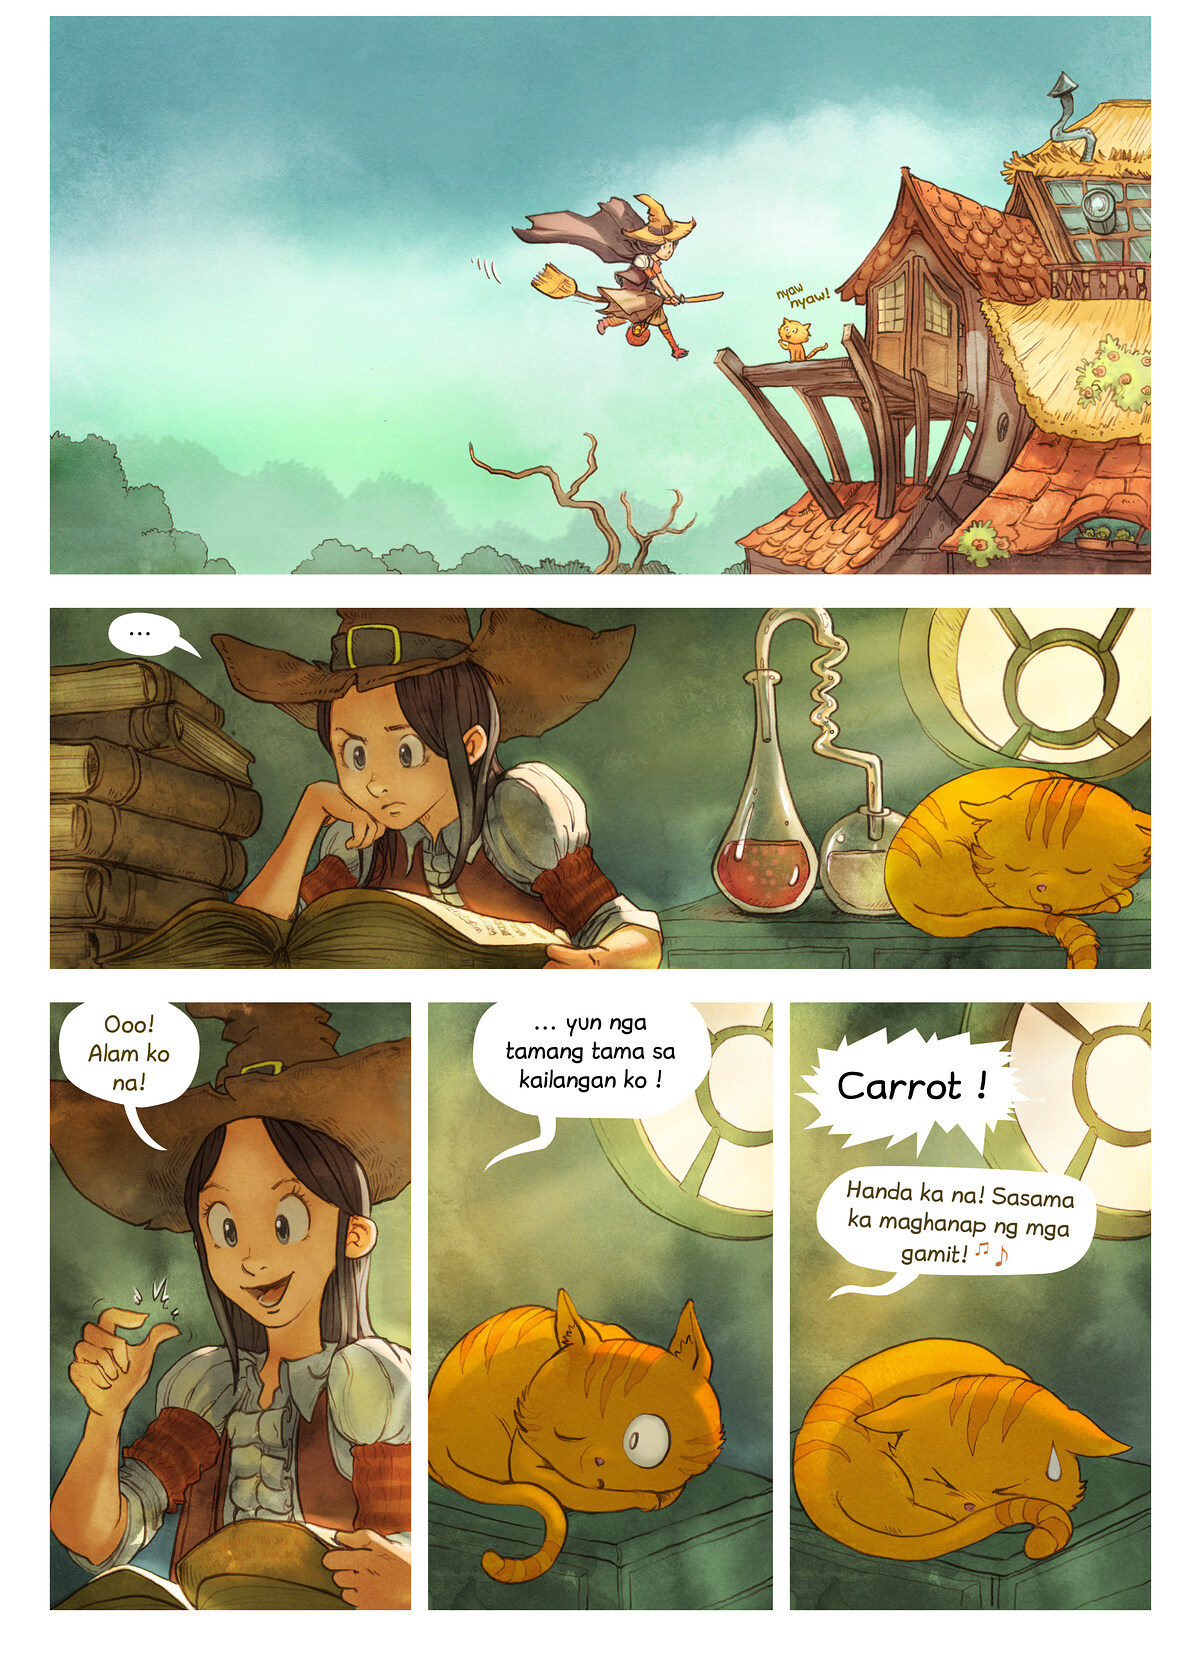 A webcomic page of Pepper&Carrot, episode 3 [ph], page 4